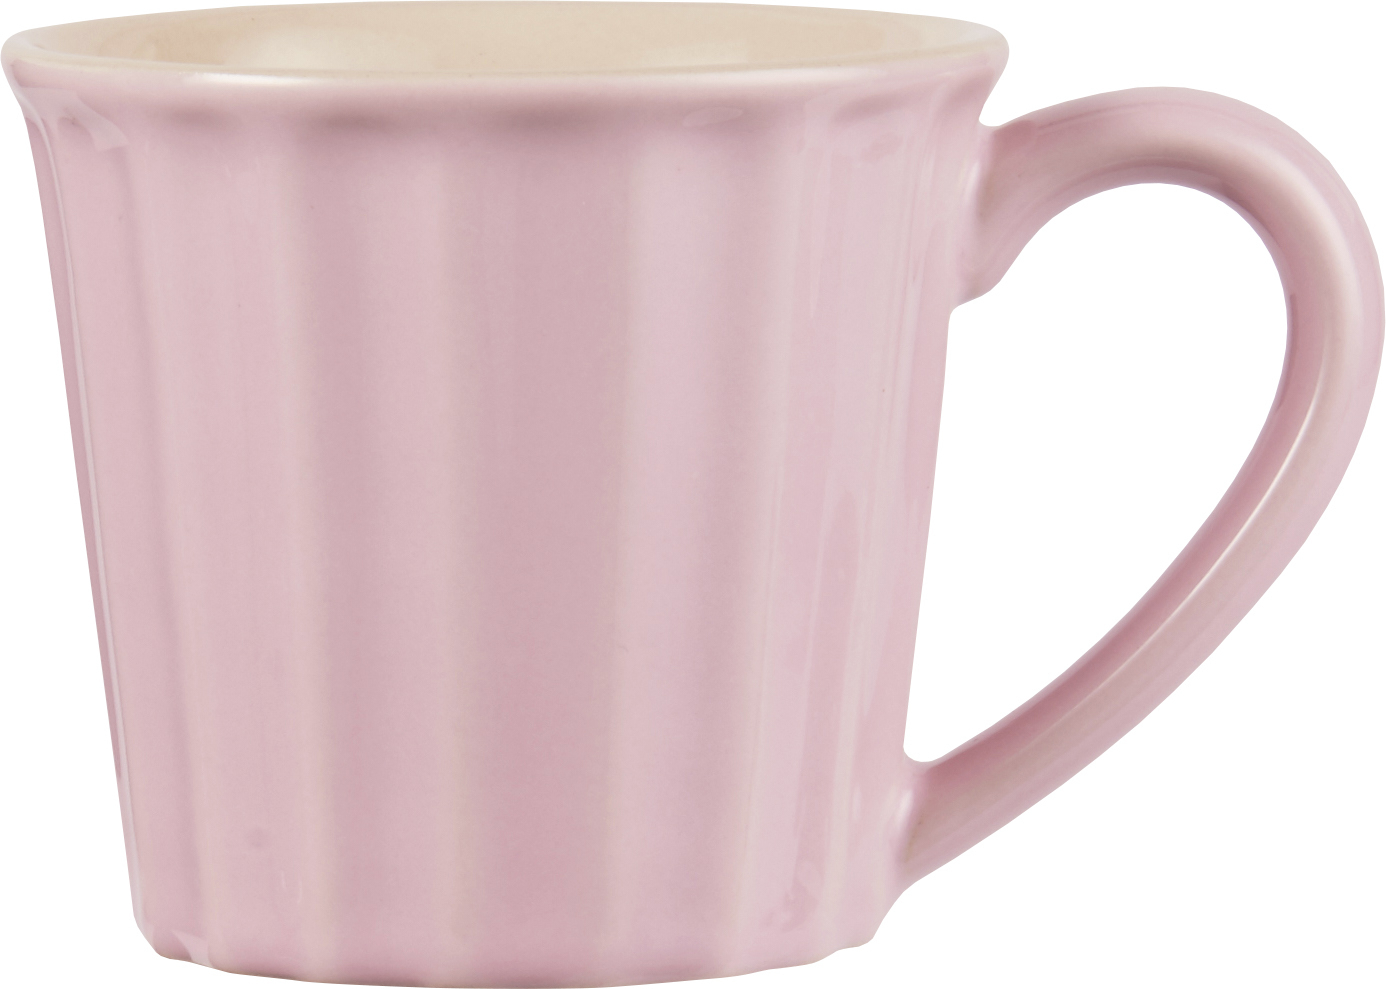 IB Laursen Mynte Becher English Rose